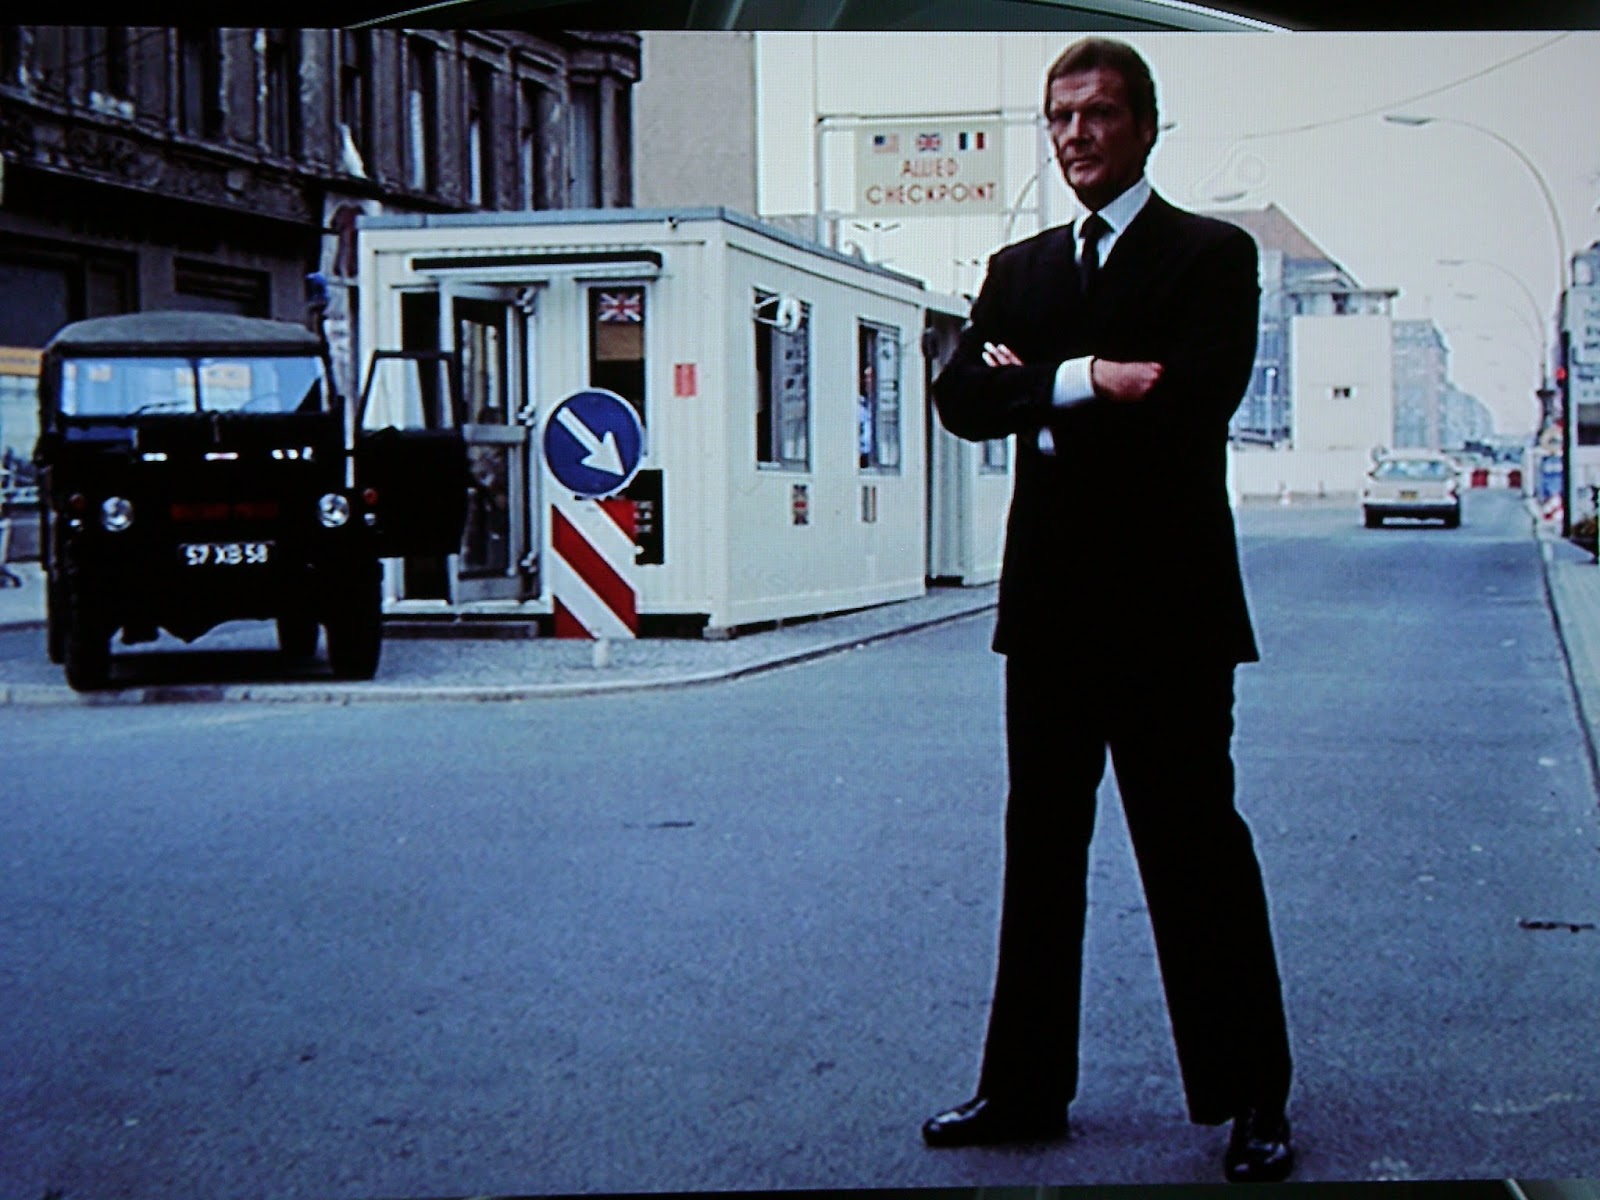 007 travelers 007 filming location checkpoint charlie octopussy 1983 publicity shot. Black Bedroom Furniture Sets. Home Design Ideas